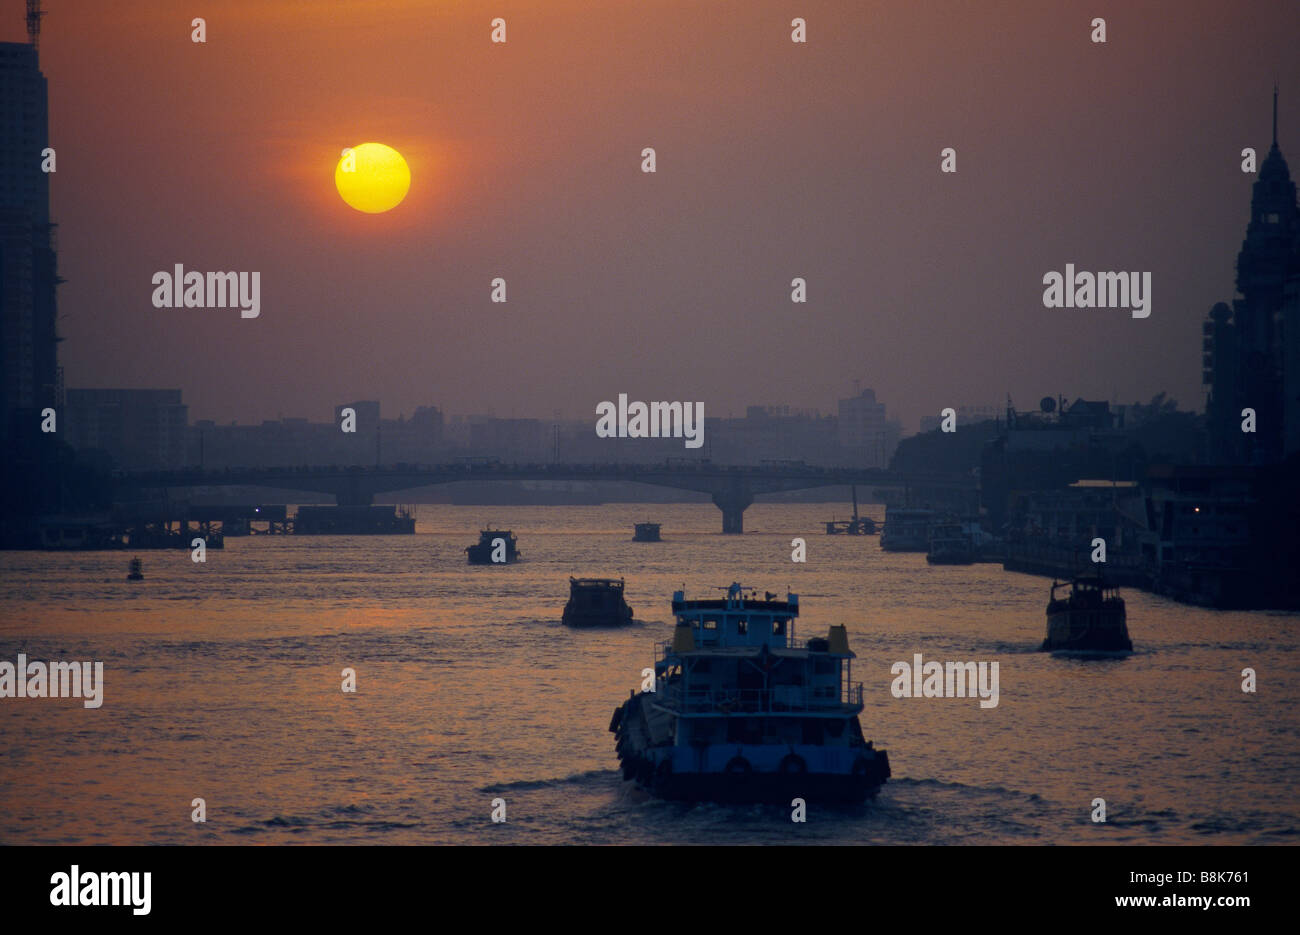 Pearl River Estuary River traffic Boats Bridge Buildings Large orange sun in sky sunset GUANGZHOU CHINA - Stock Image